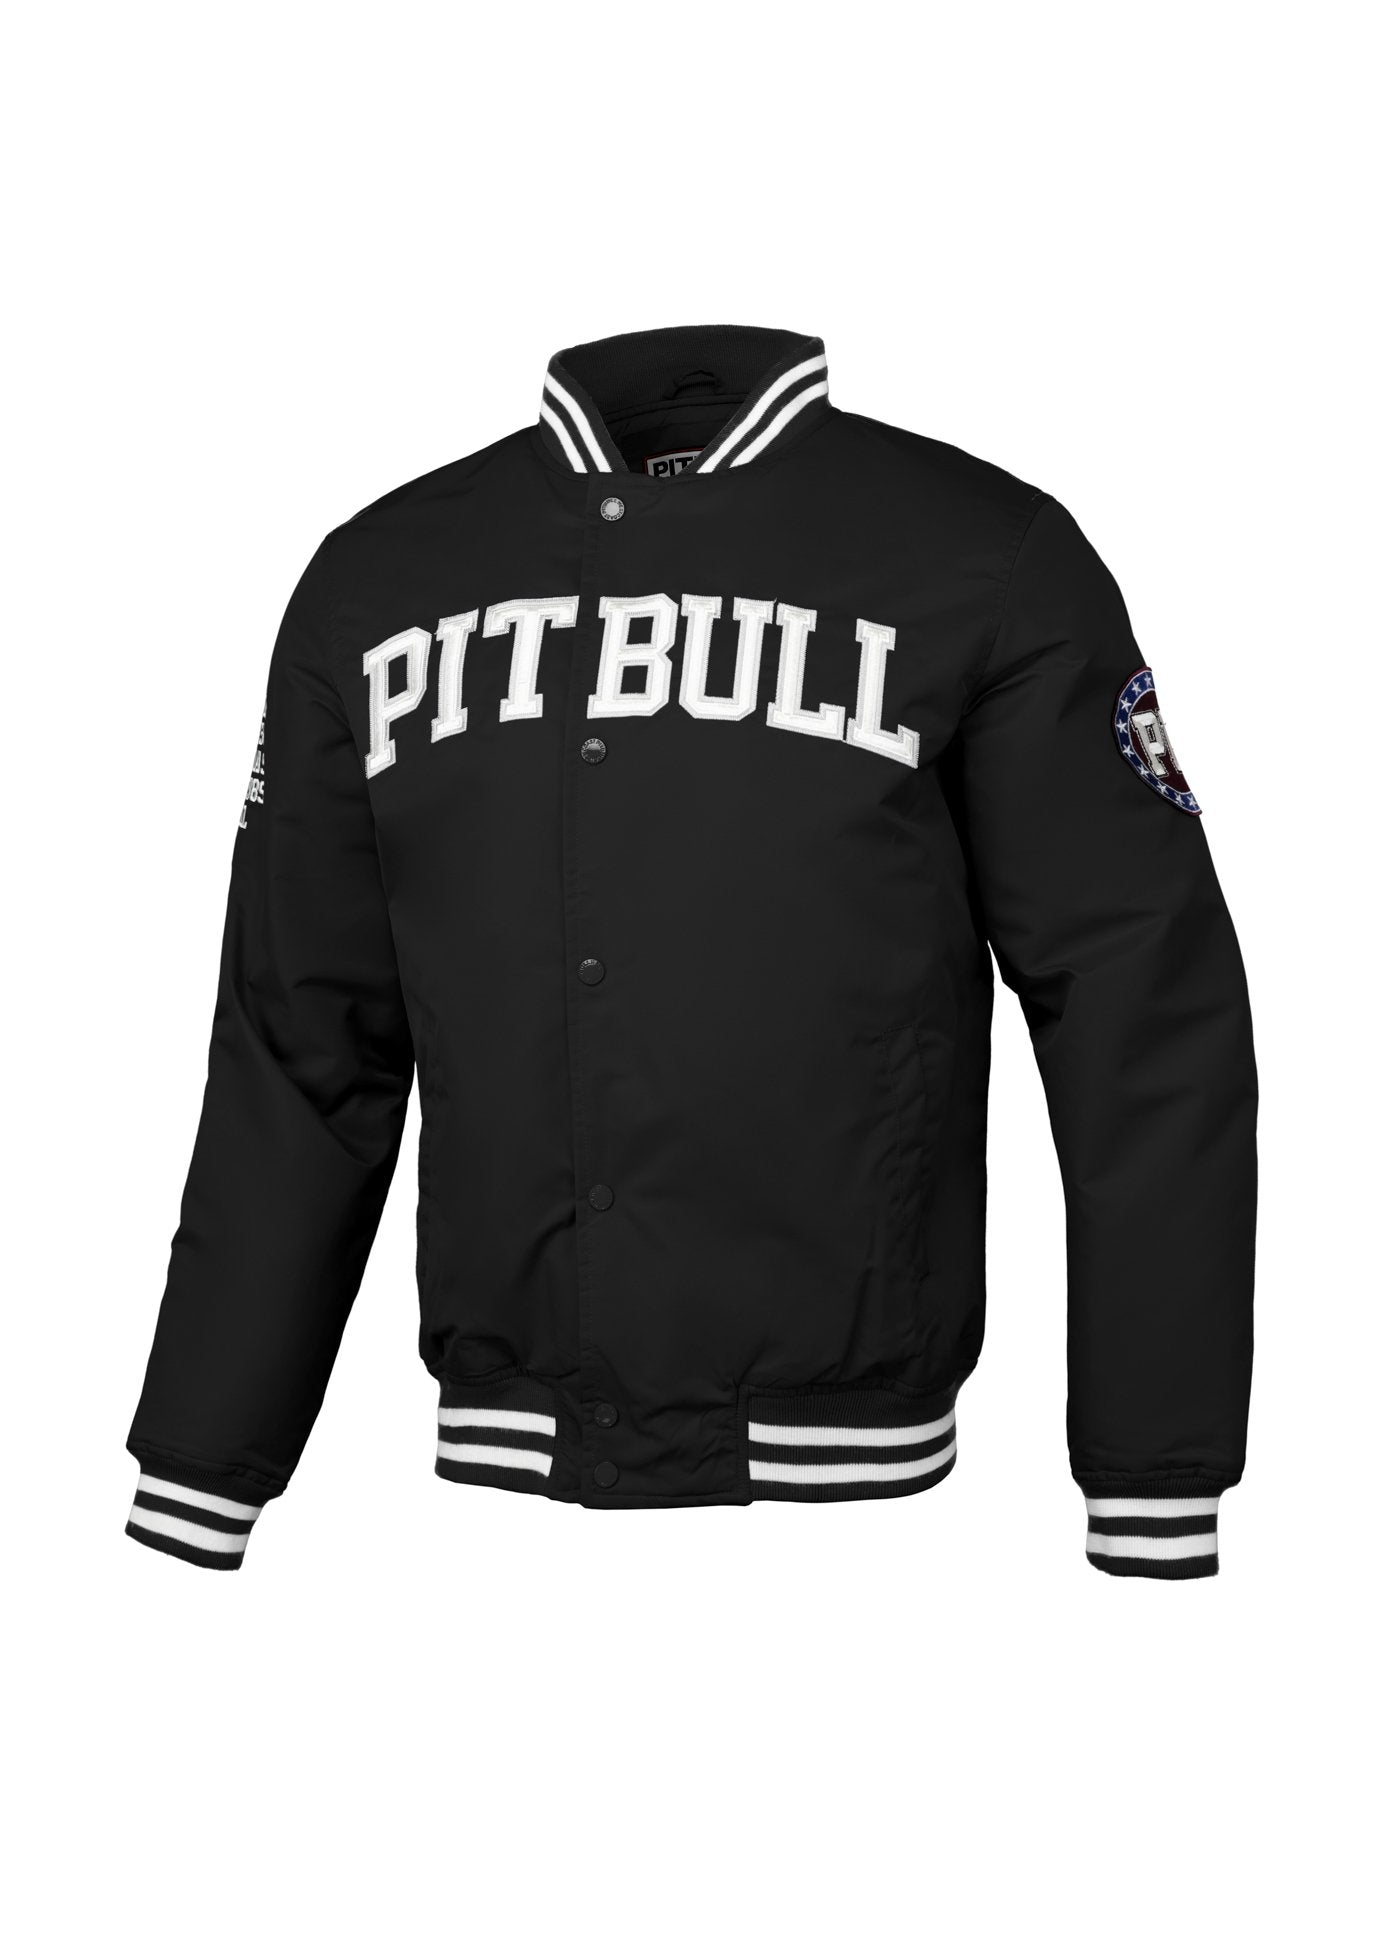 JACKET HERSON BLACK - Pitbull West Coast U.S.A.